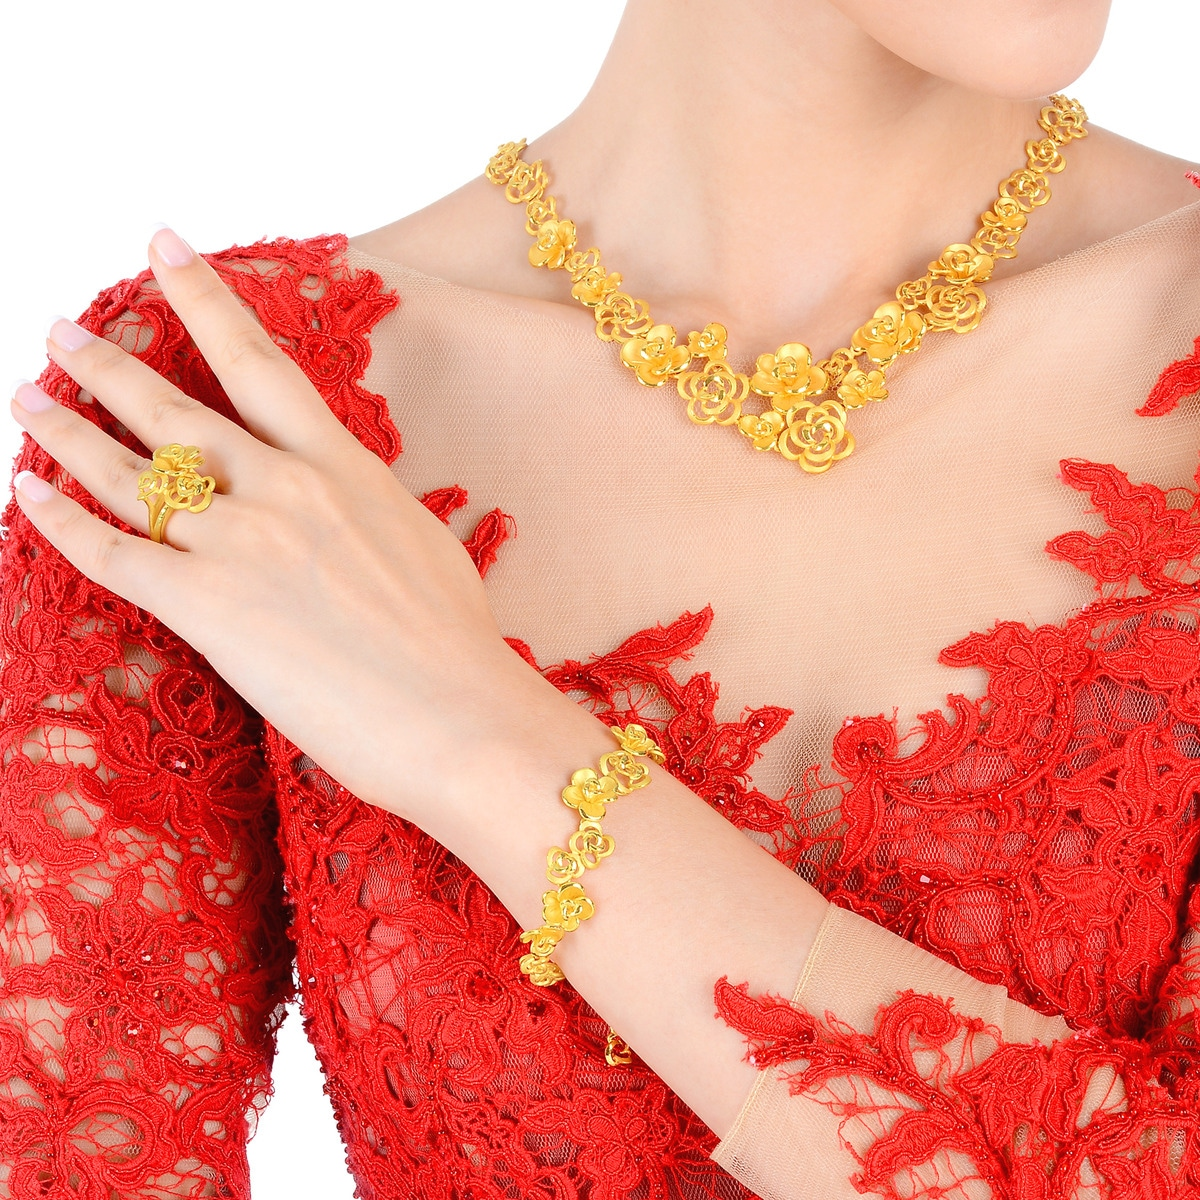 Chinese Wedding Collection \'Floral\' 999.9 Gold Necklace | Chow ...